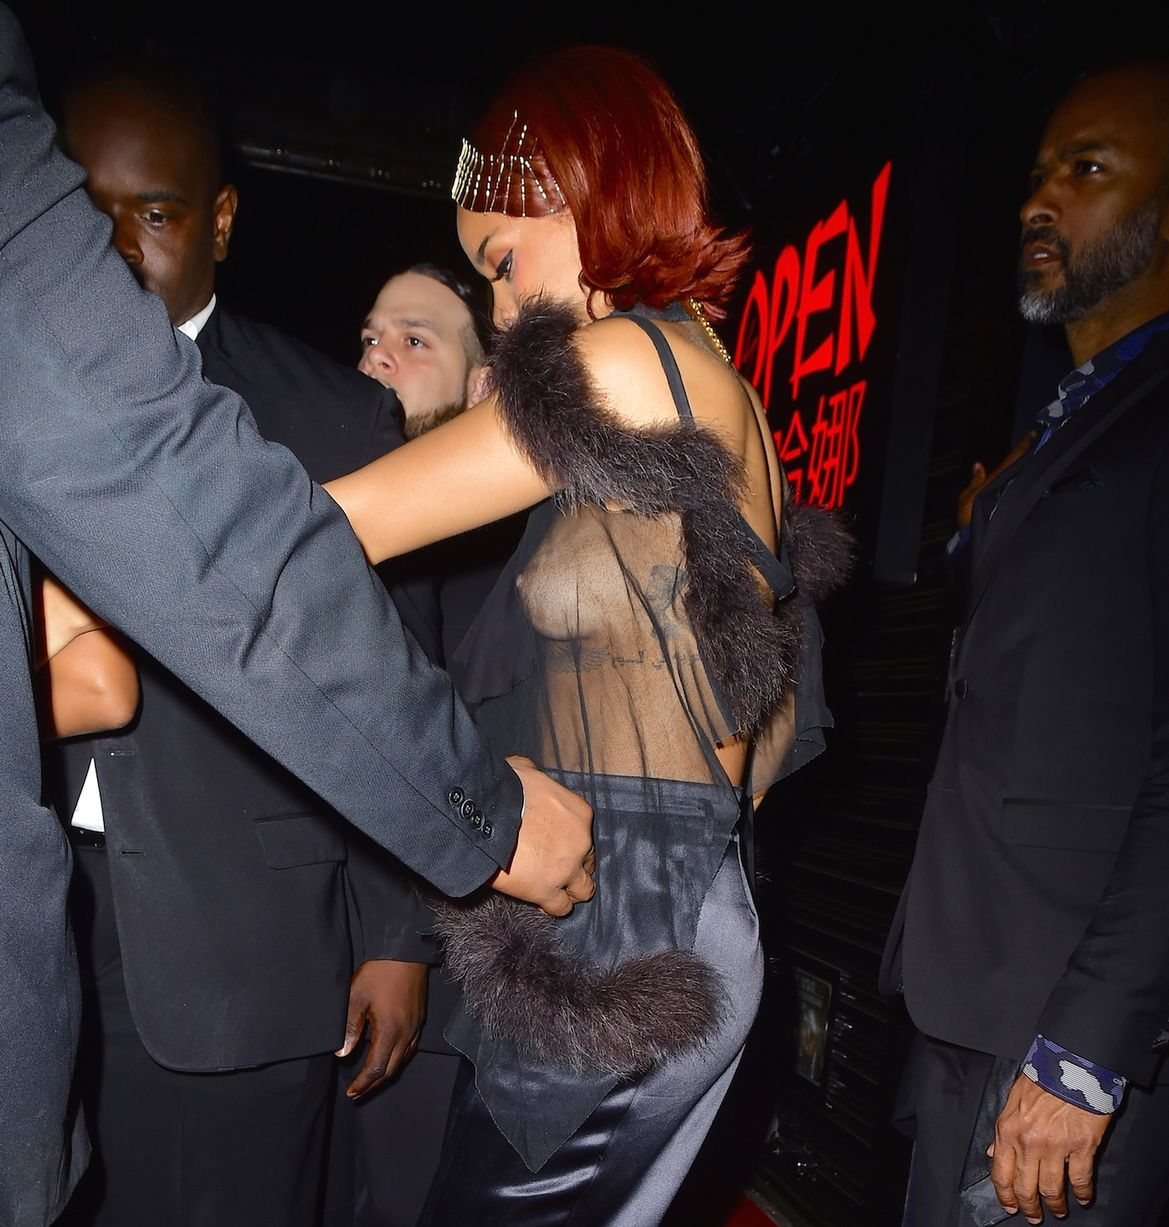 rihanna-nipple-slip-at-met-gala-after-party-13